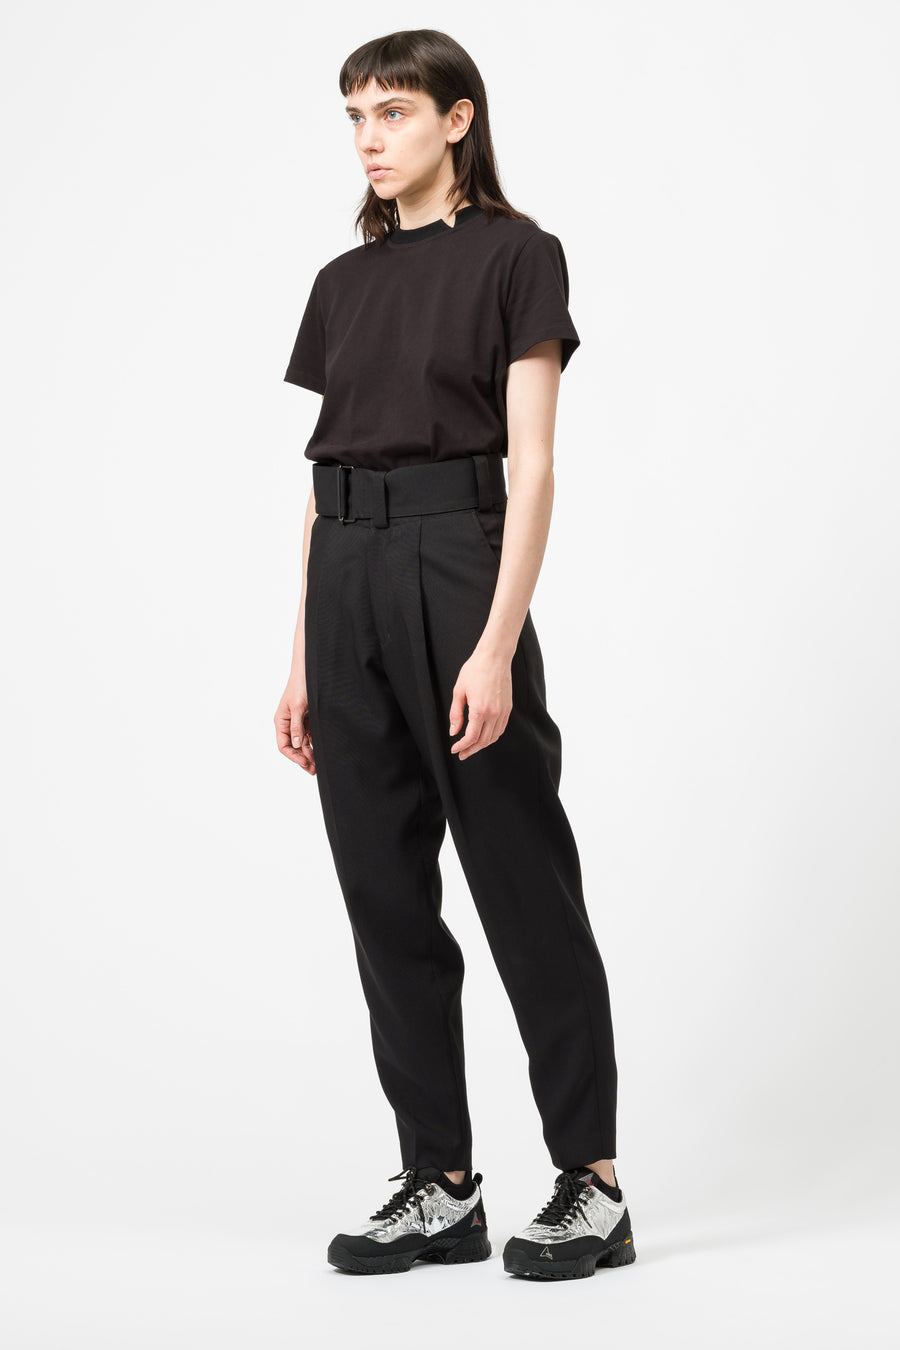 Hyke Woven Pants in Black - Notre